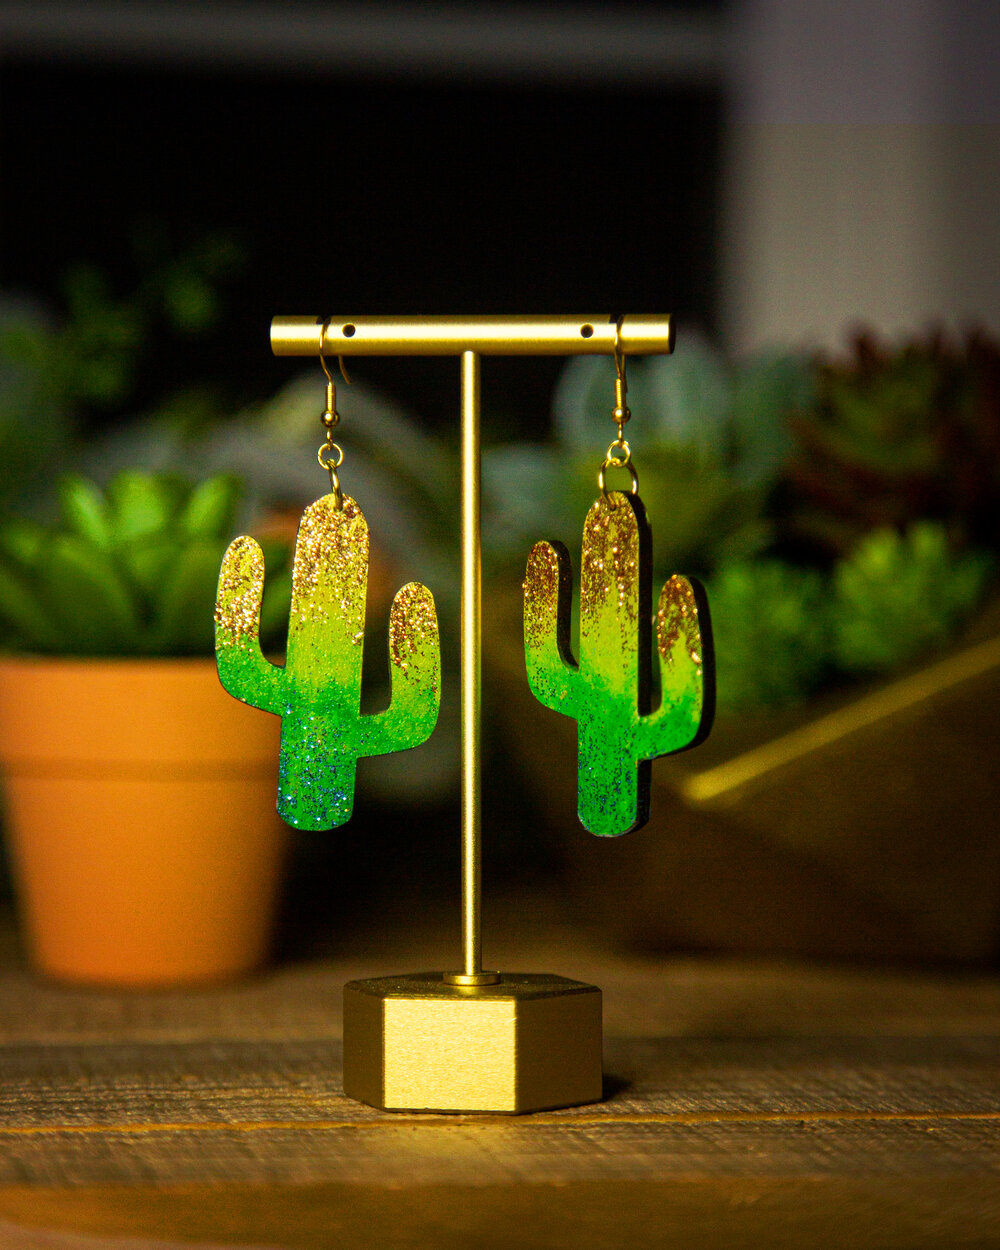 Wood Cactus Cheetah earrings and necklace